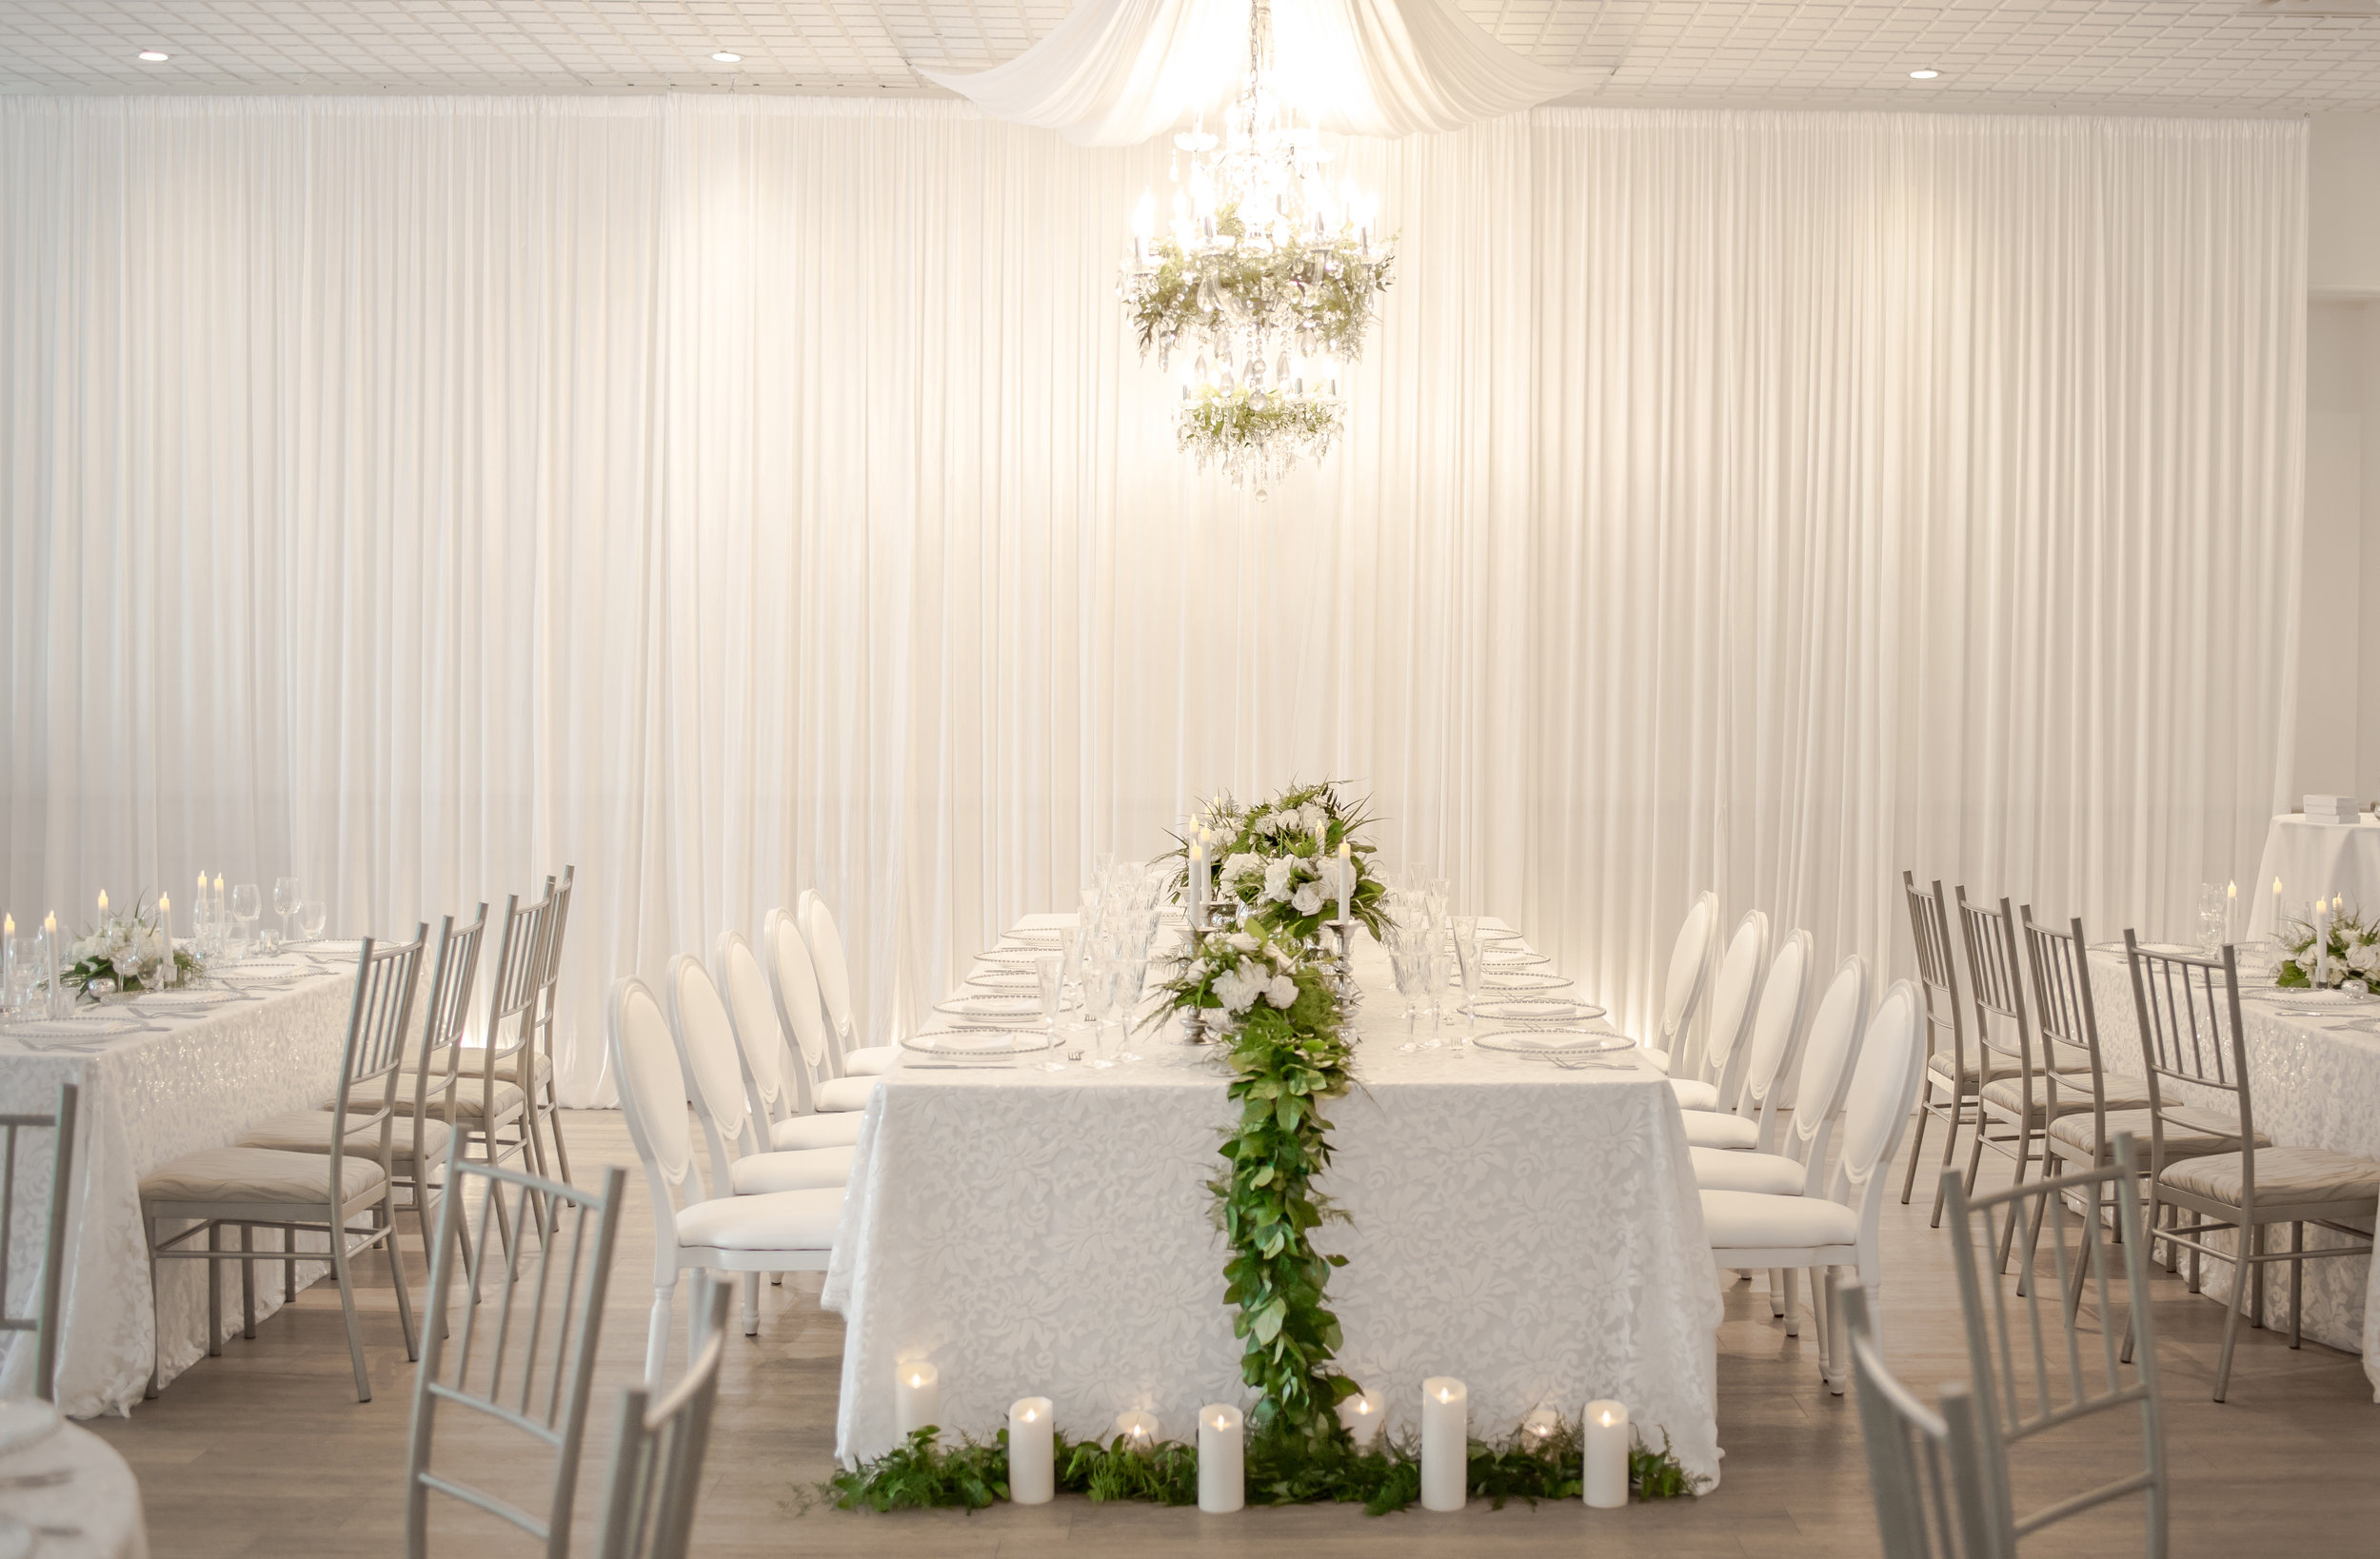 Set against a flowing white backdrop, the elaborate king's table display in the Ballroom included everything from a lush greenery runner, crystal chandeliers and stemware, to the ever-classic white Louis XVI dining chair.